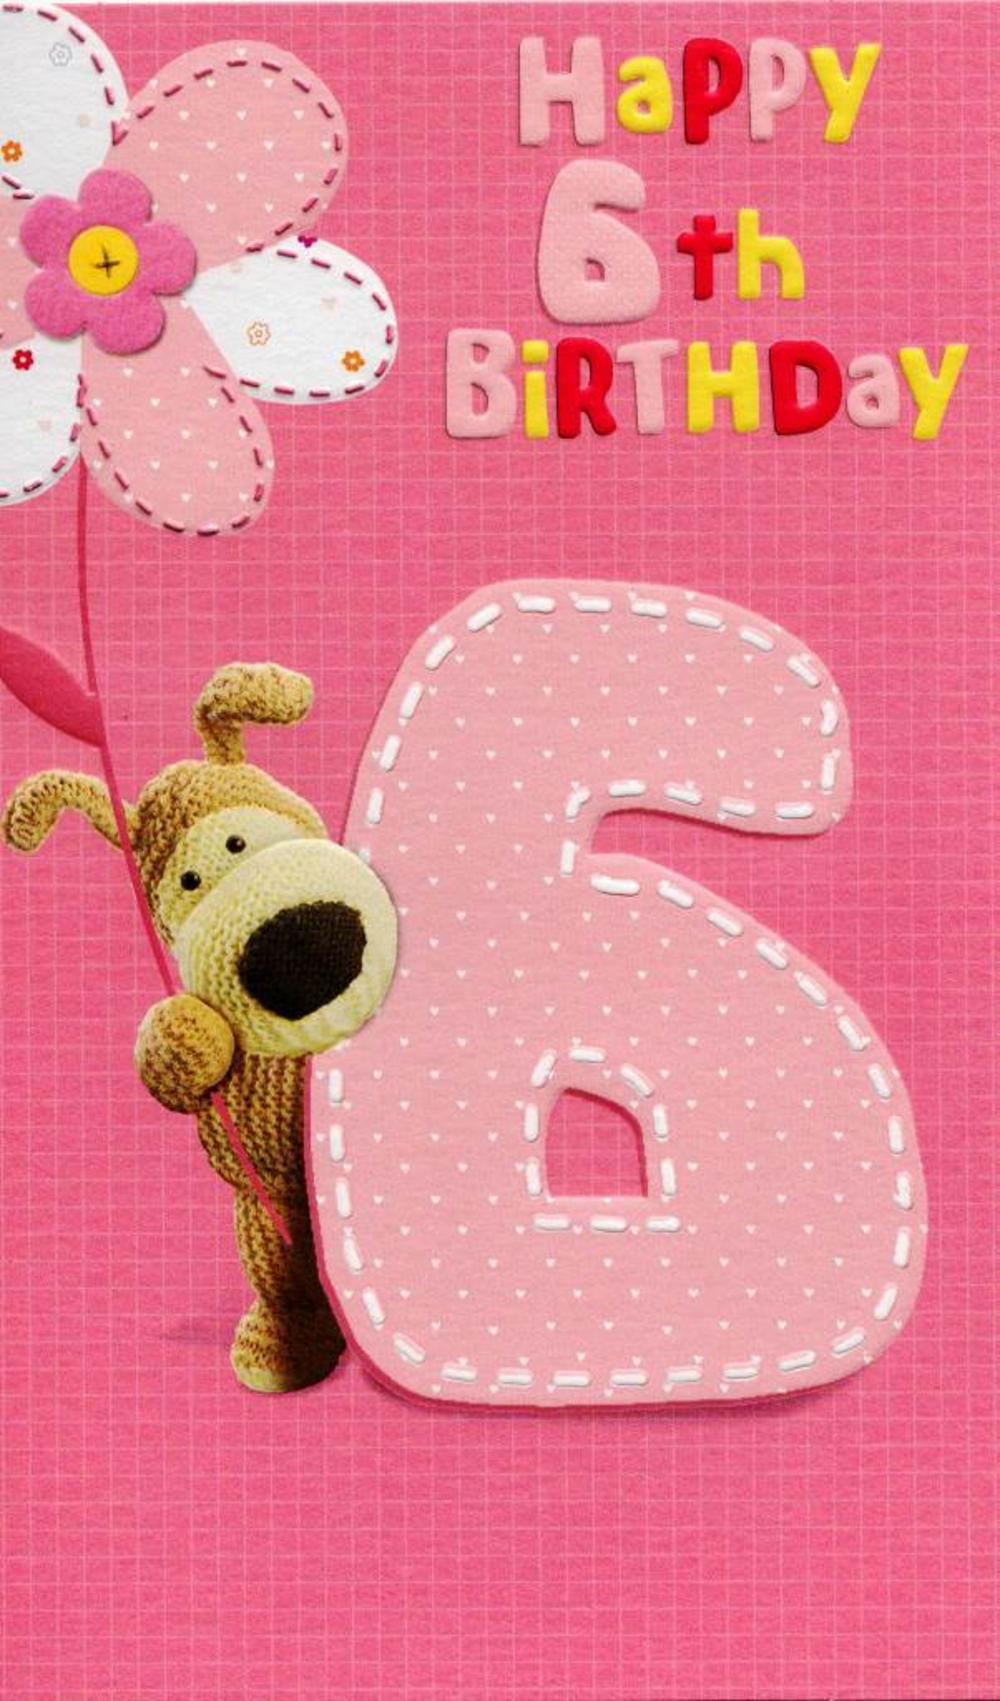 Boofle happy 6th birthday greeting card cards love kates boofle happy 6th birthday greeting card bookmarktalkfo Images